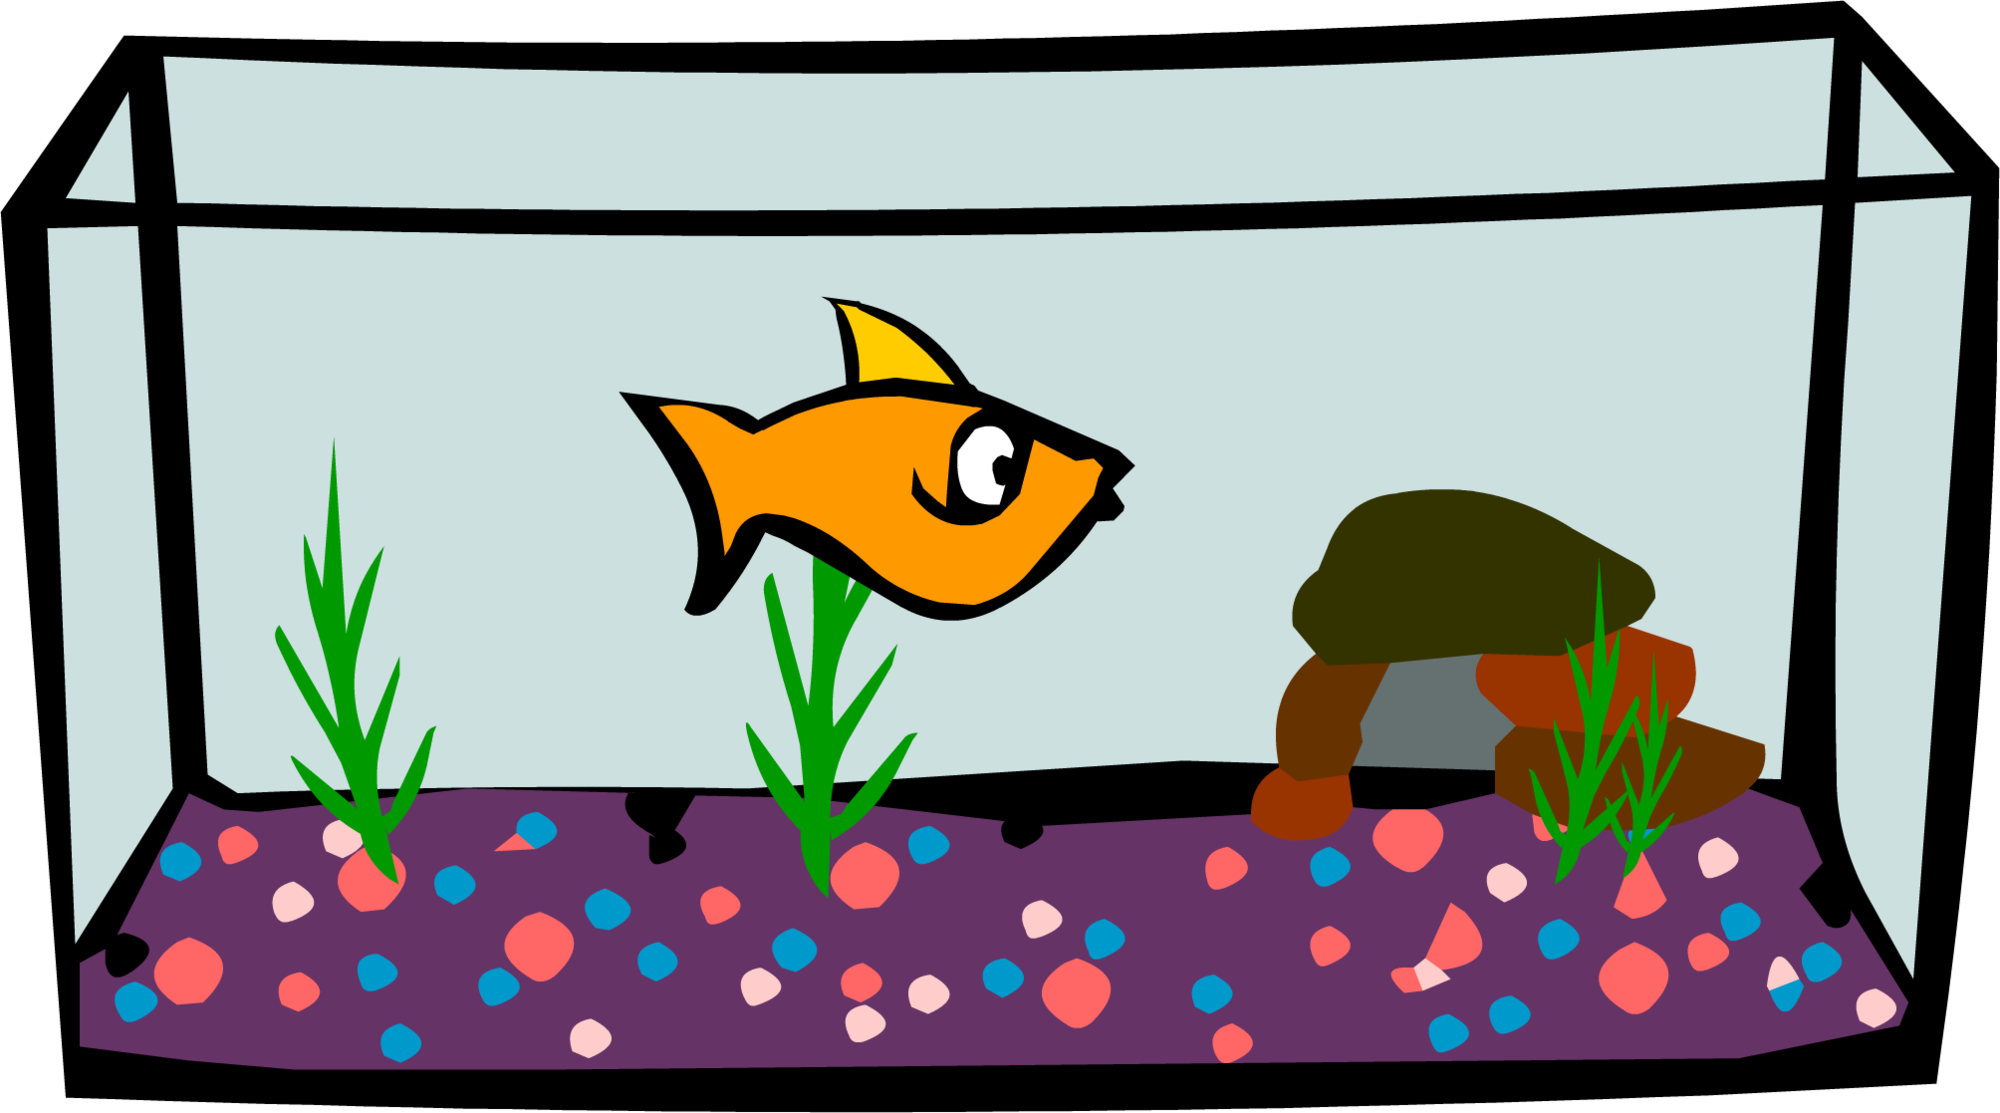 Fish tank transparent clipart png black and white Aquarium | Club Penguin Wiki | FANDOM powered by Wikia png black and white